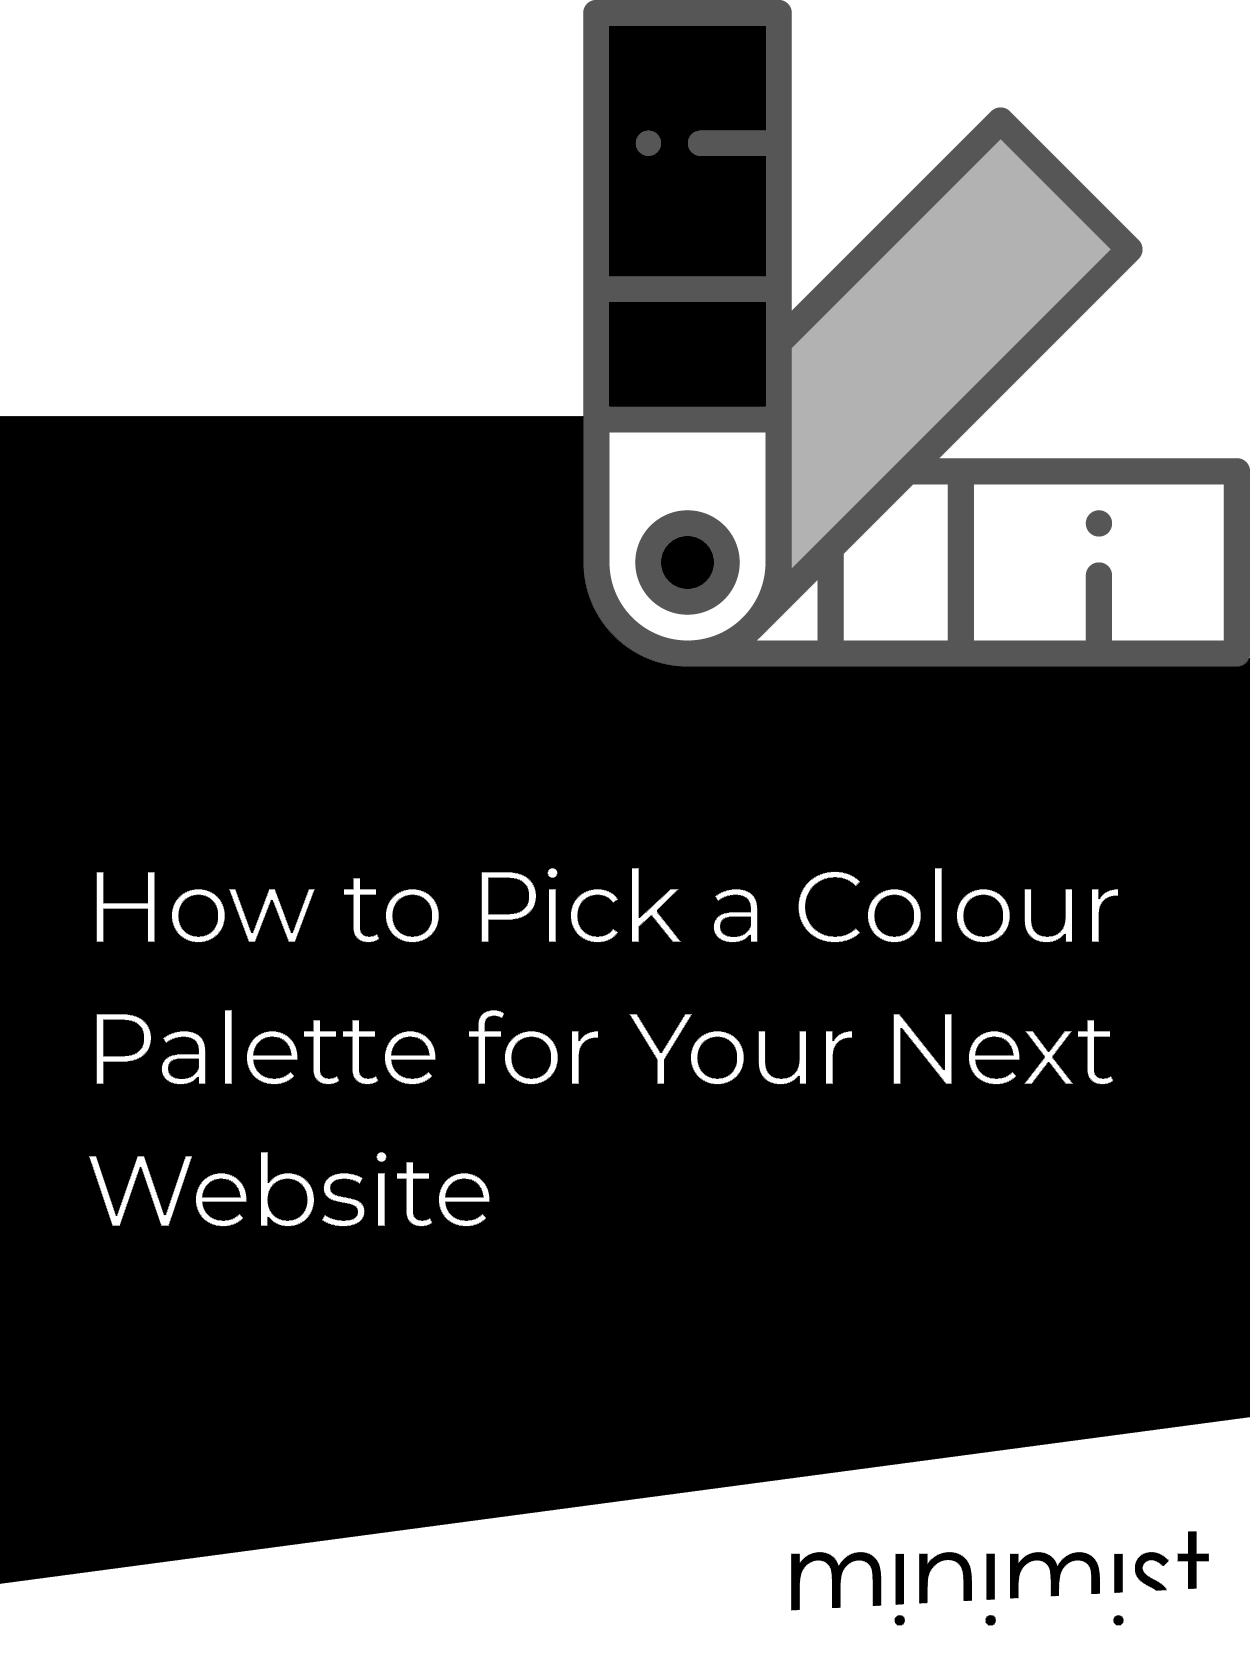 How to Pick a Colour Palette for Your Next Website